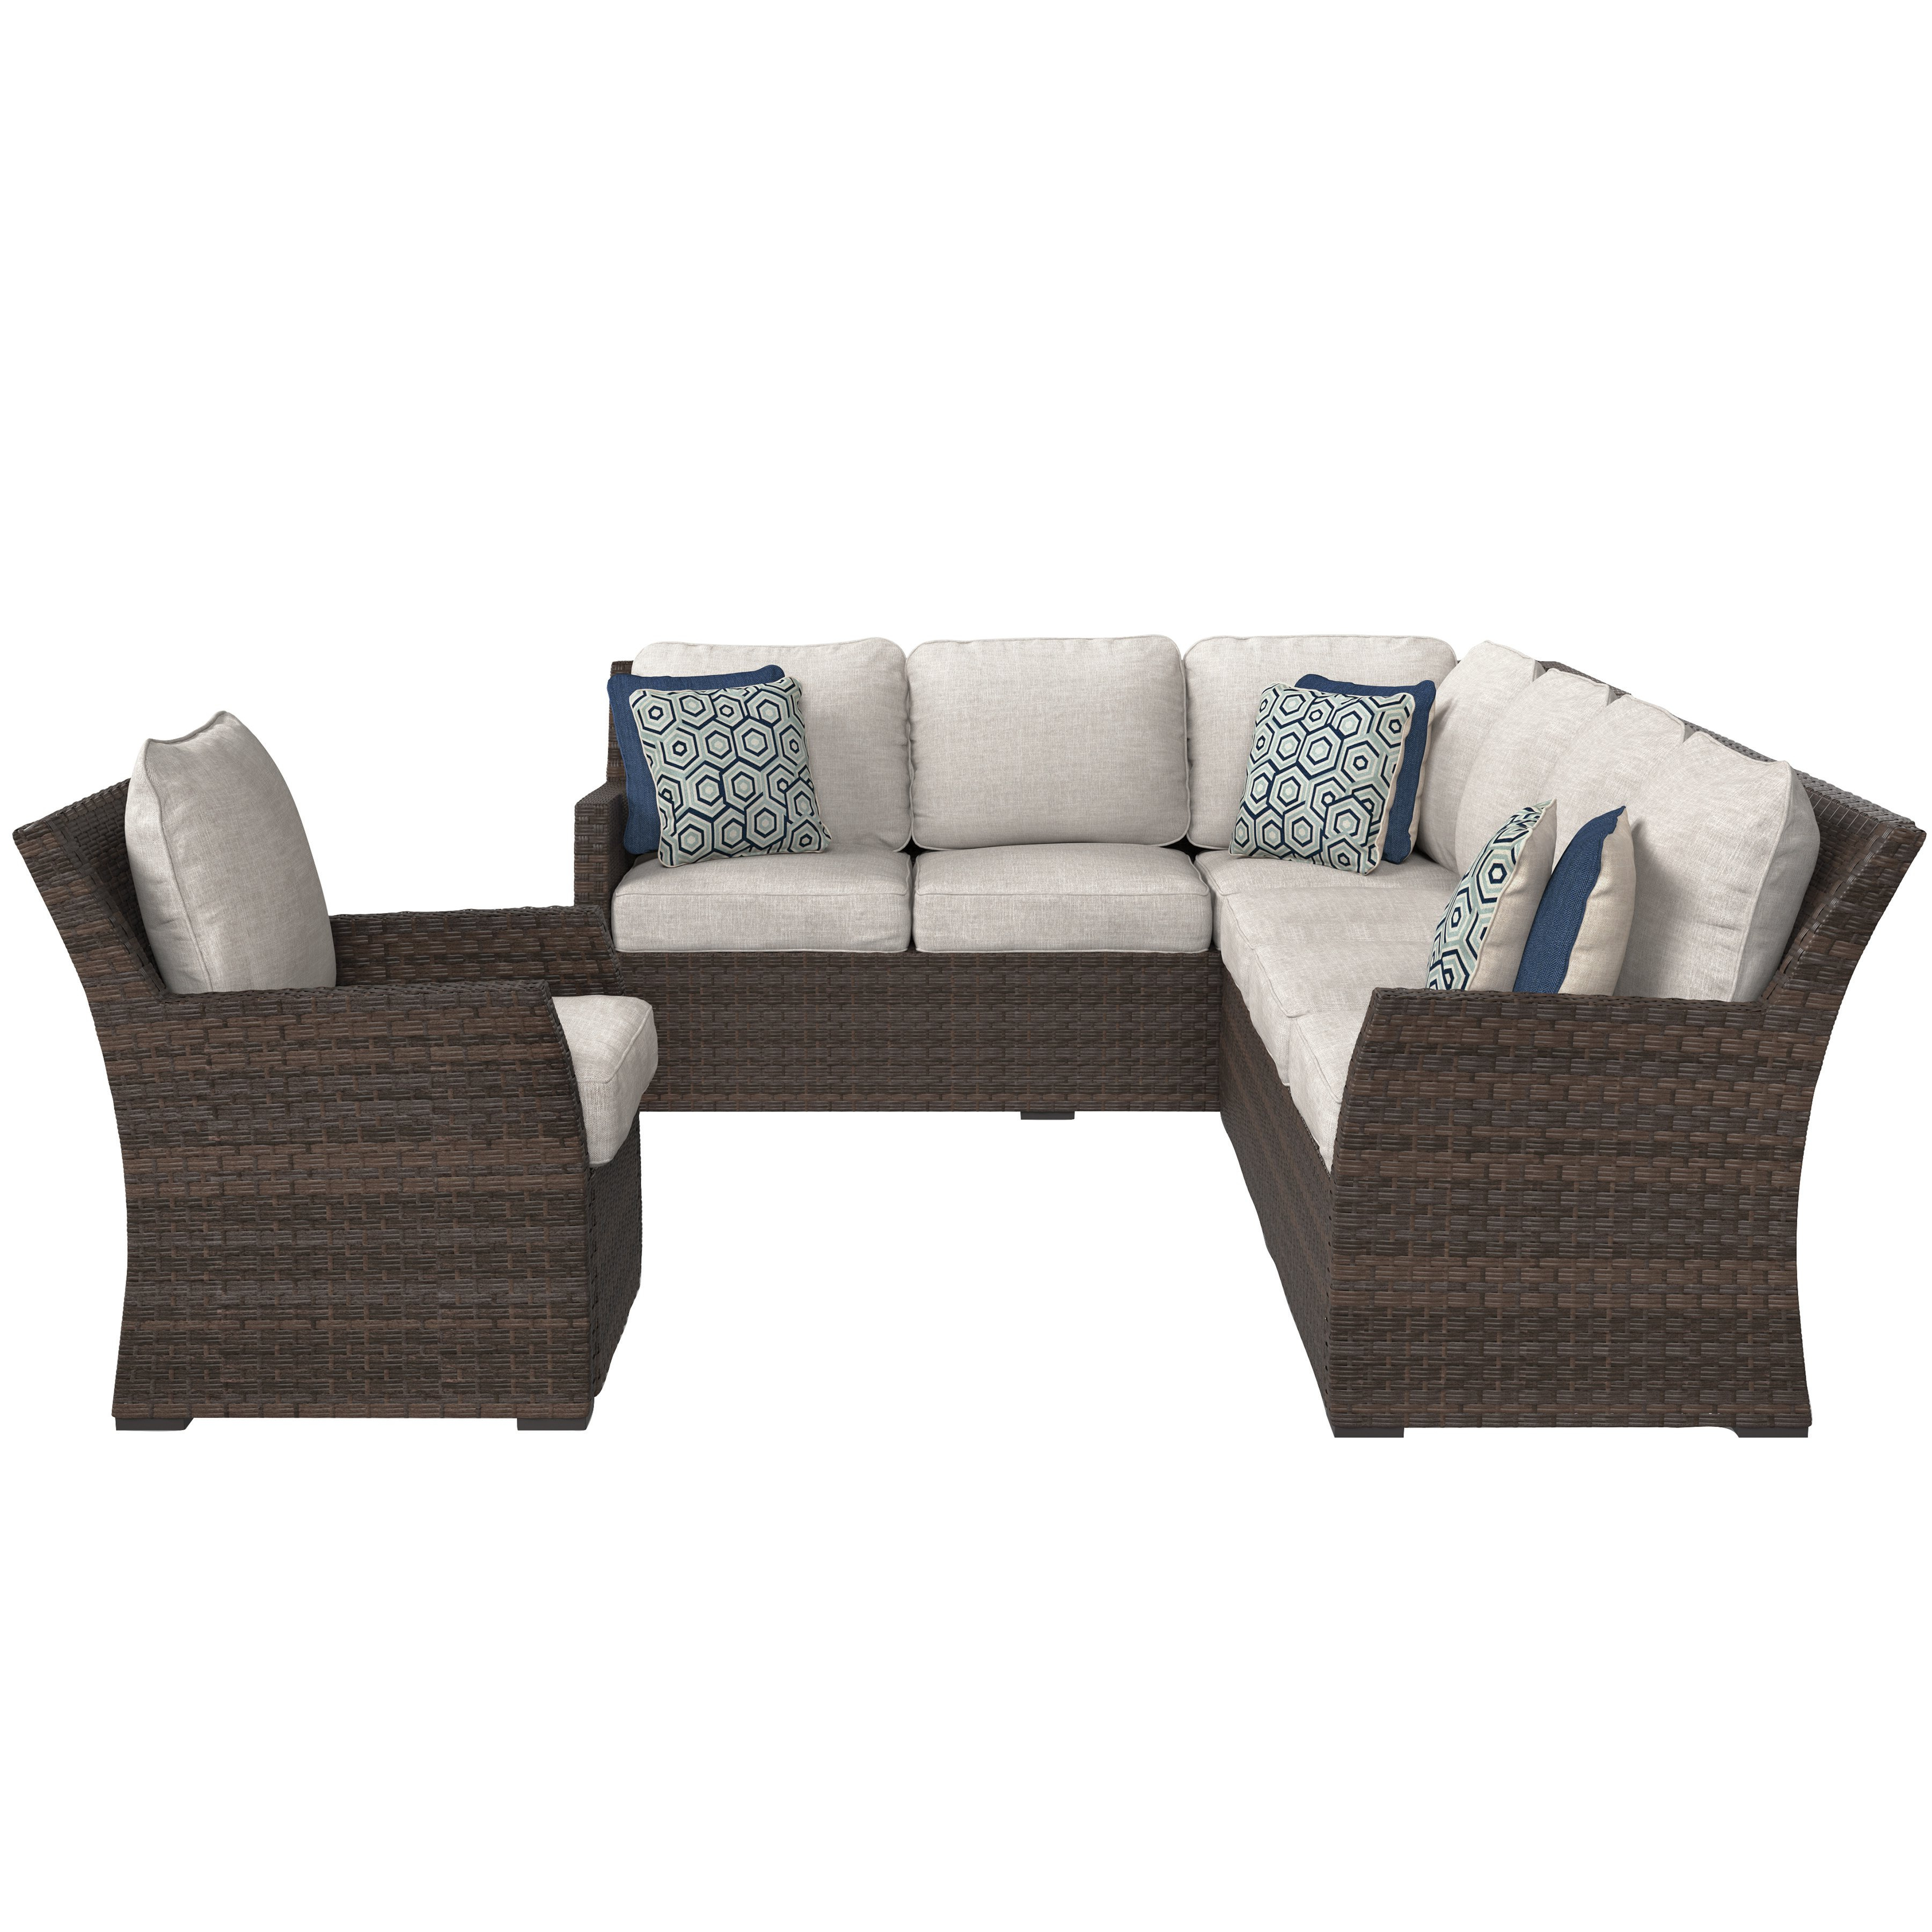 Adele Patio Sectional With Cushions Regarding Well Liked Northridge Patio Sofas With Sunbrella Cushions (View 2 of 20)